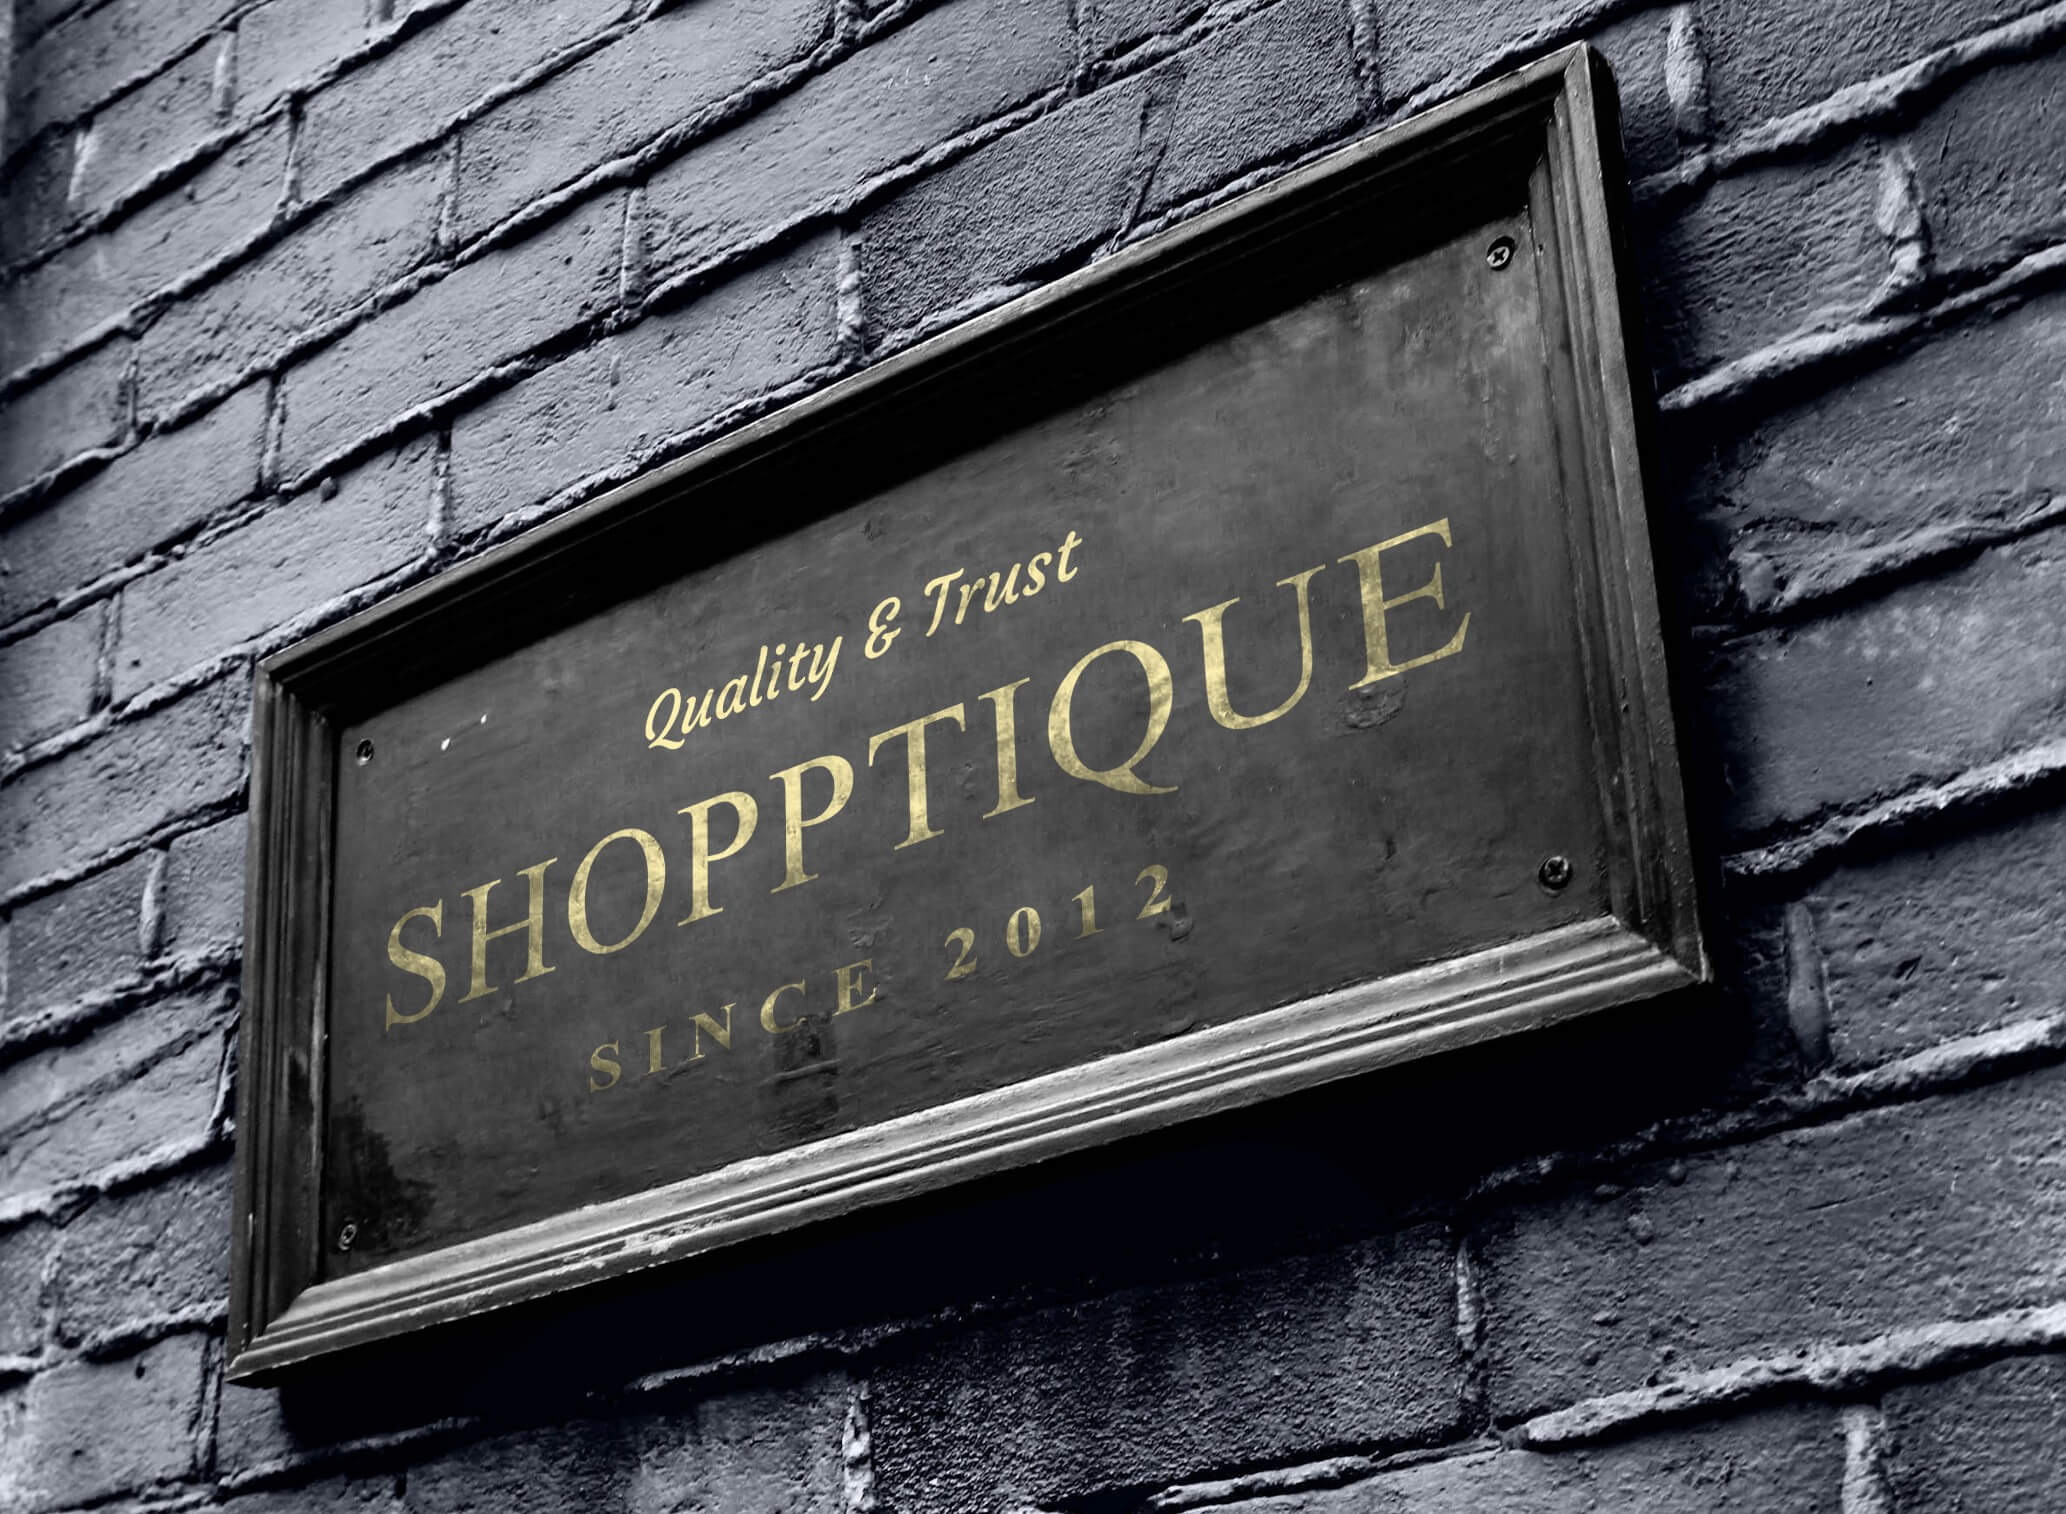 shopptique-logo